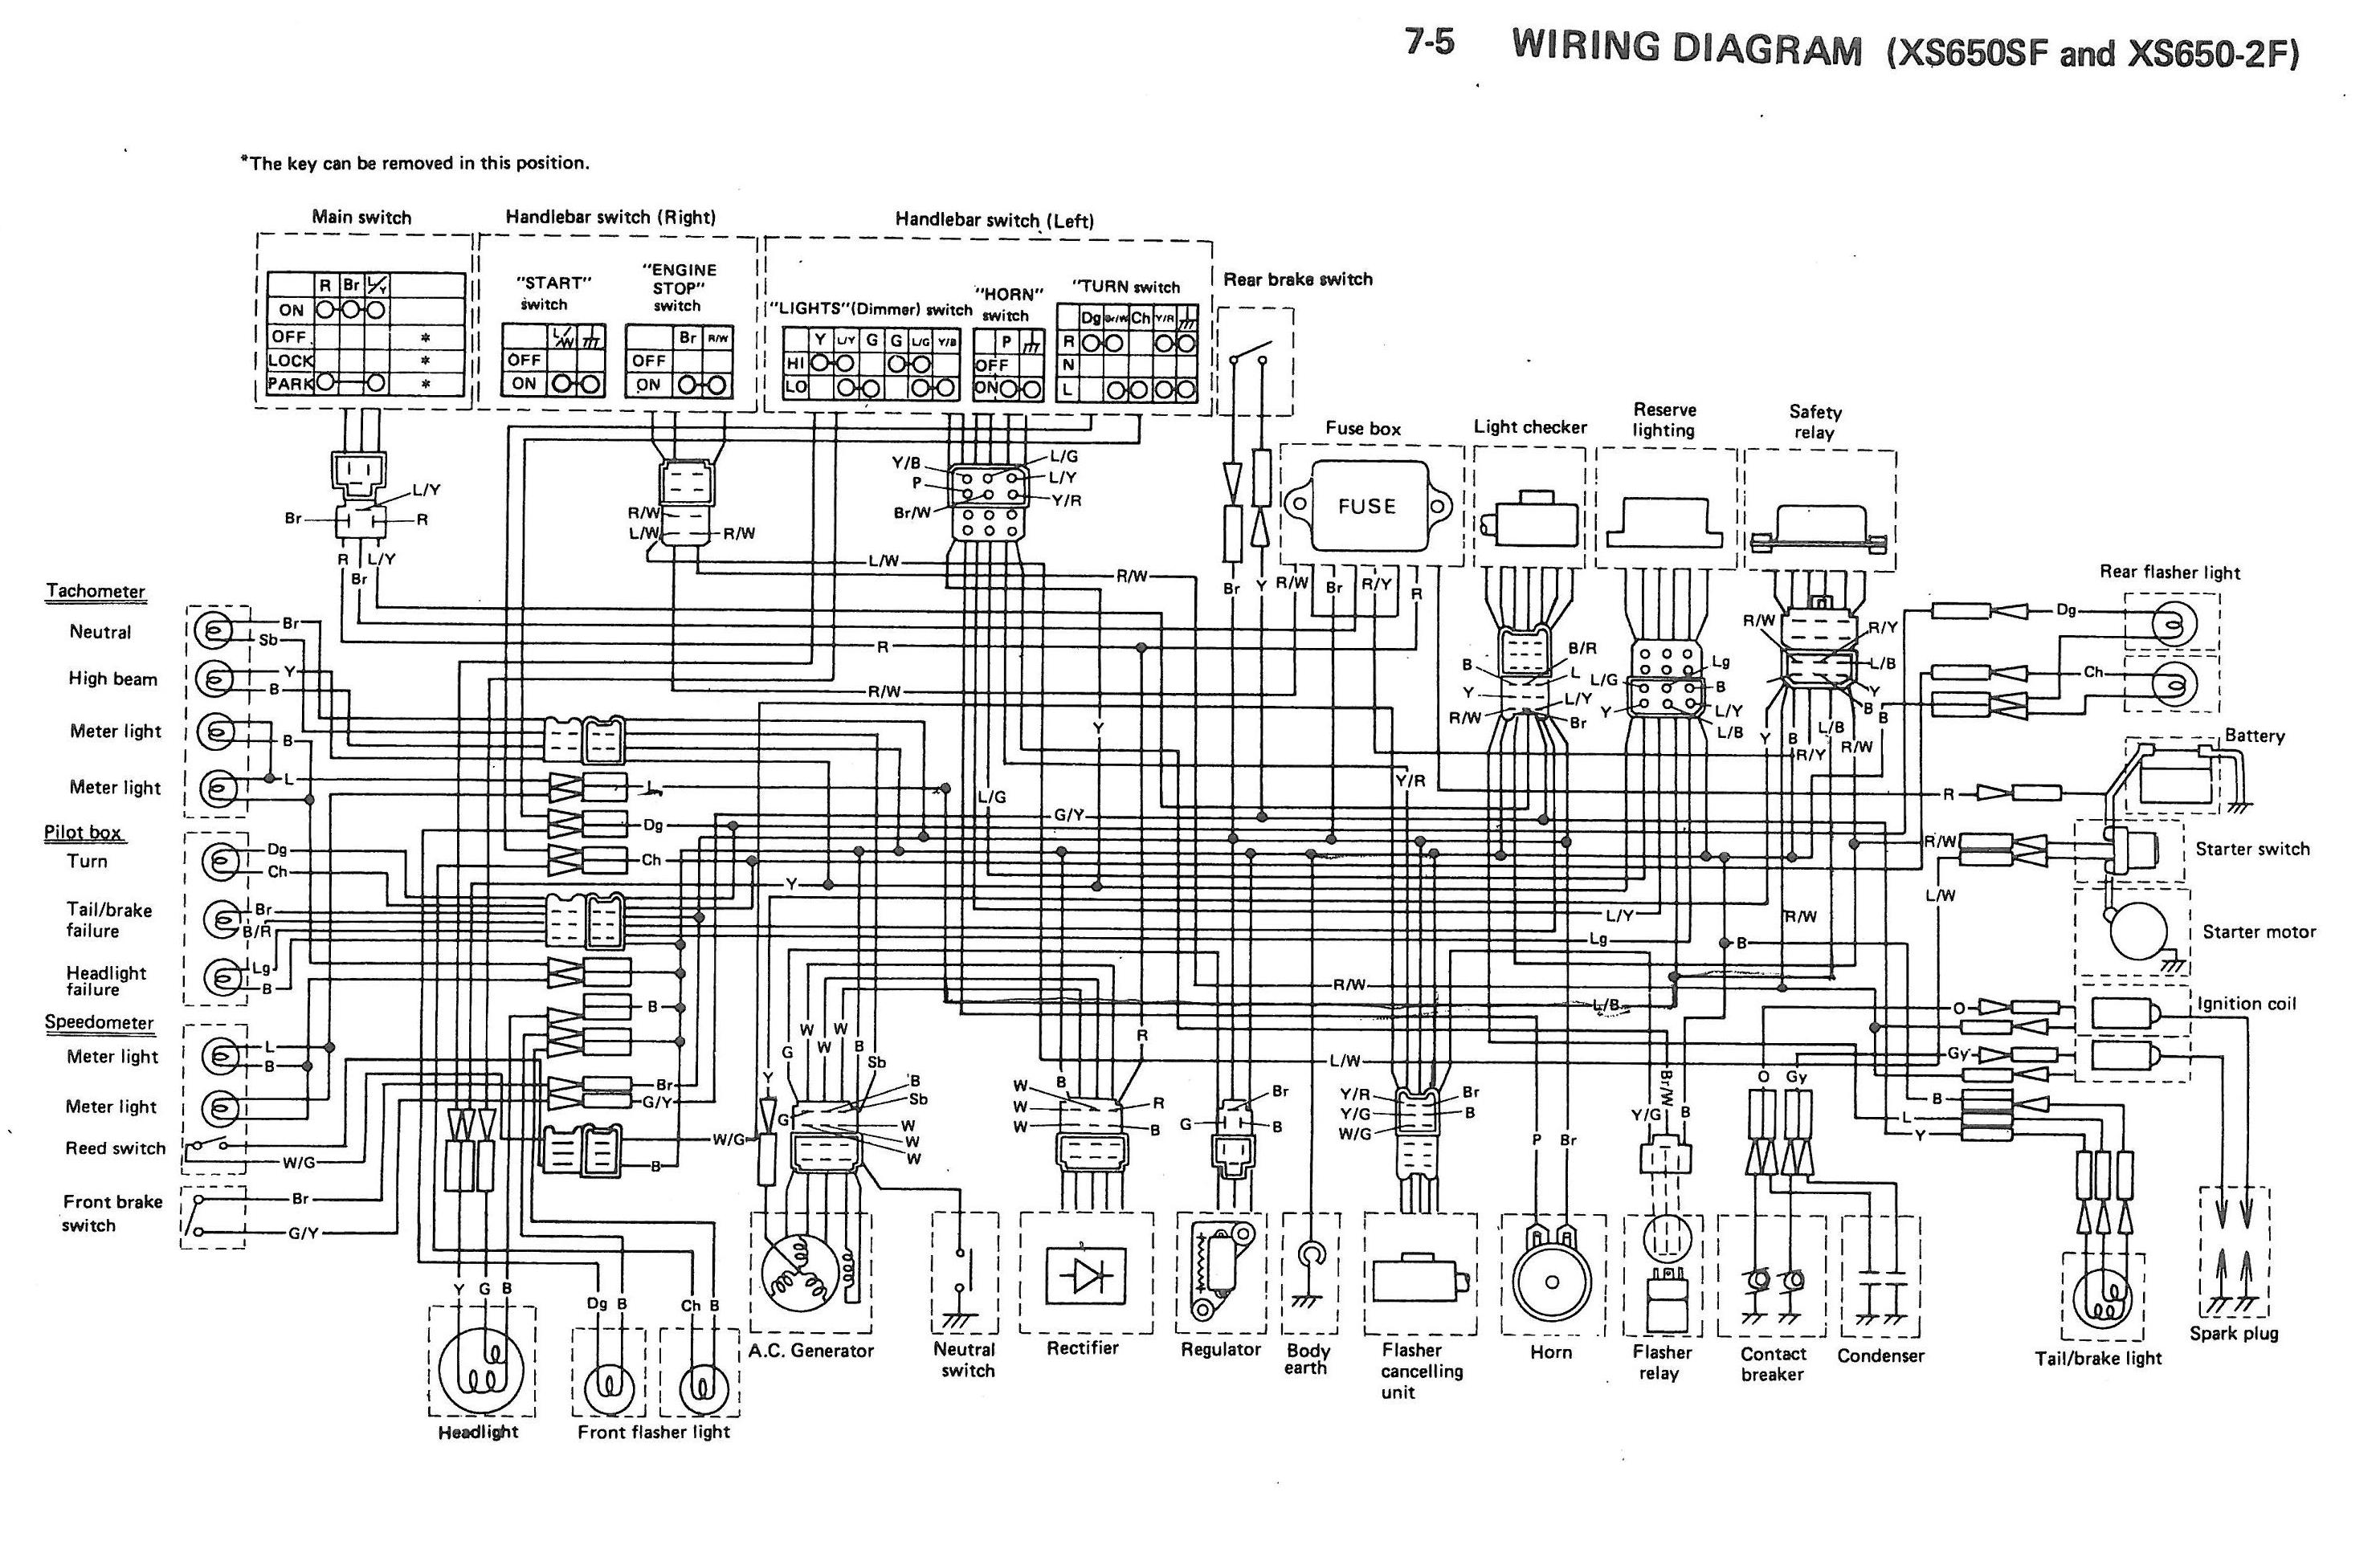 Yamaha 650 Wiring Diagram Simple Electrical Wire 1977 Kawasaki Xs650 79 Xs650sf 2f Diagrams Thexscafe V Star